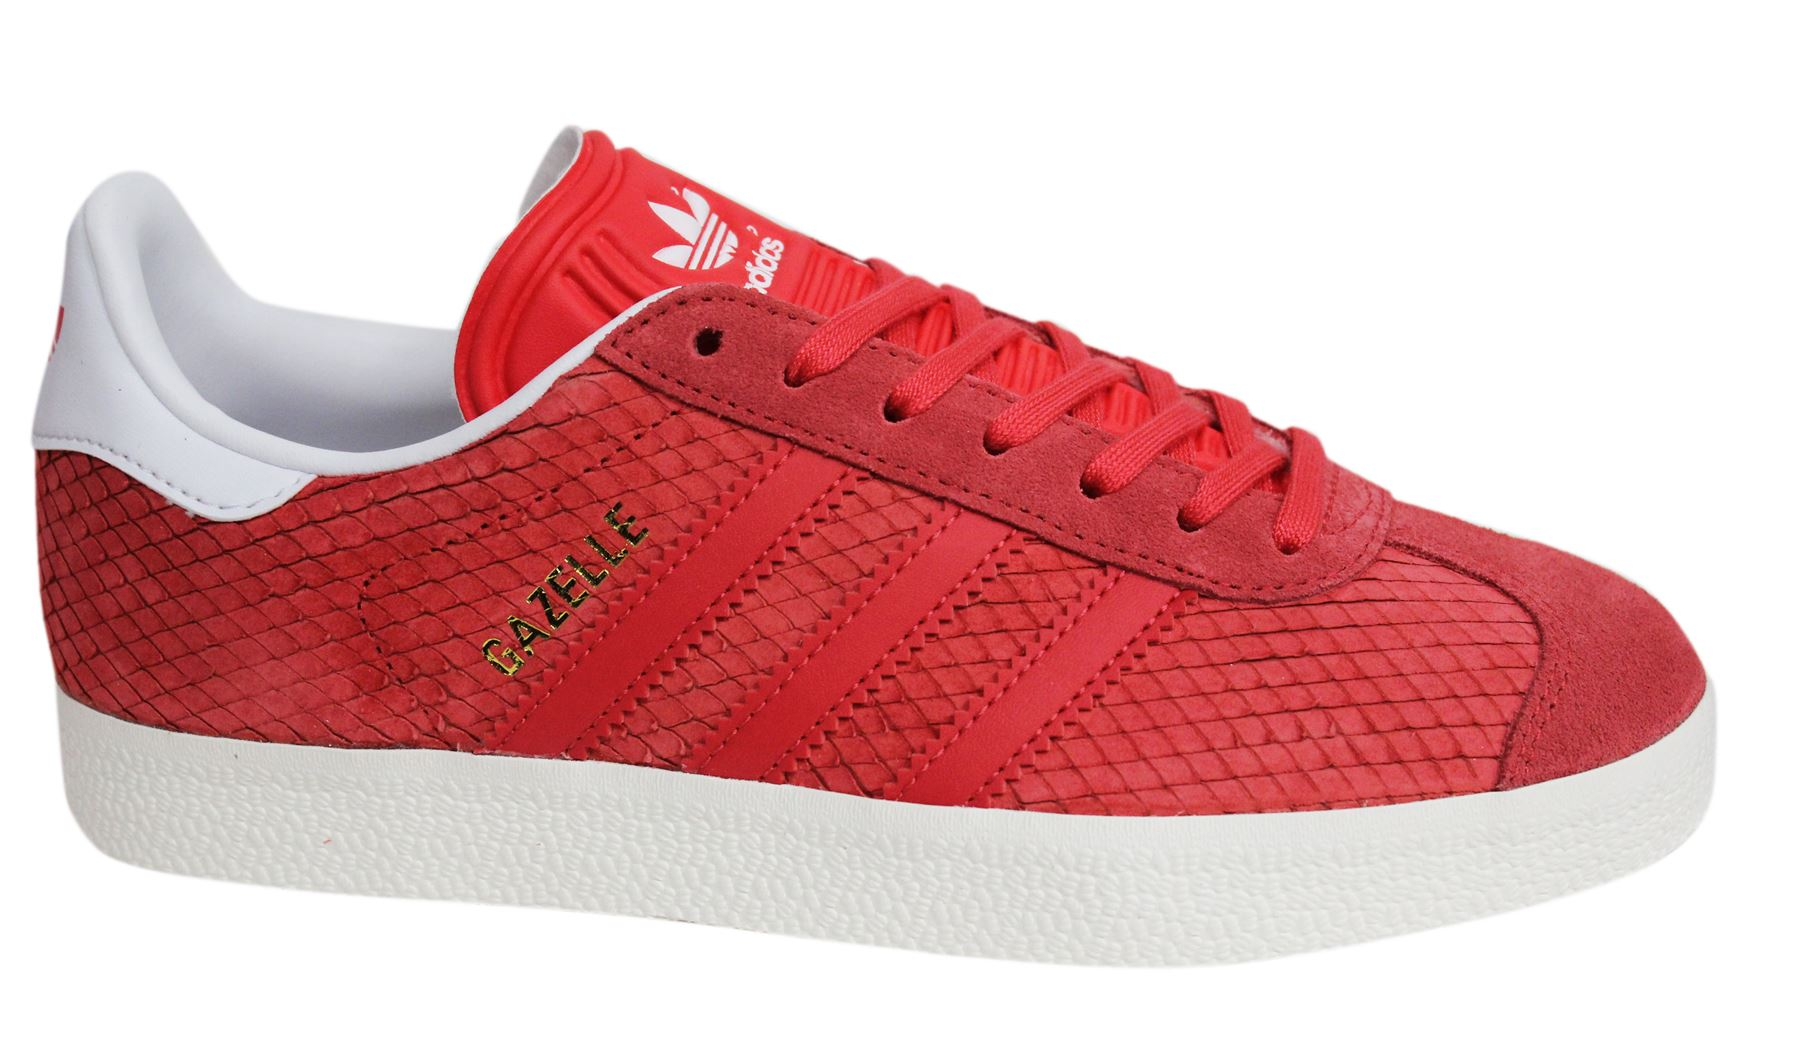 Adidas Originals Gazelle Lace Up Pink Damenschuhe Leder Damenschuhe Pink Trainers BB5174 44655d